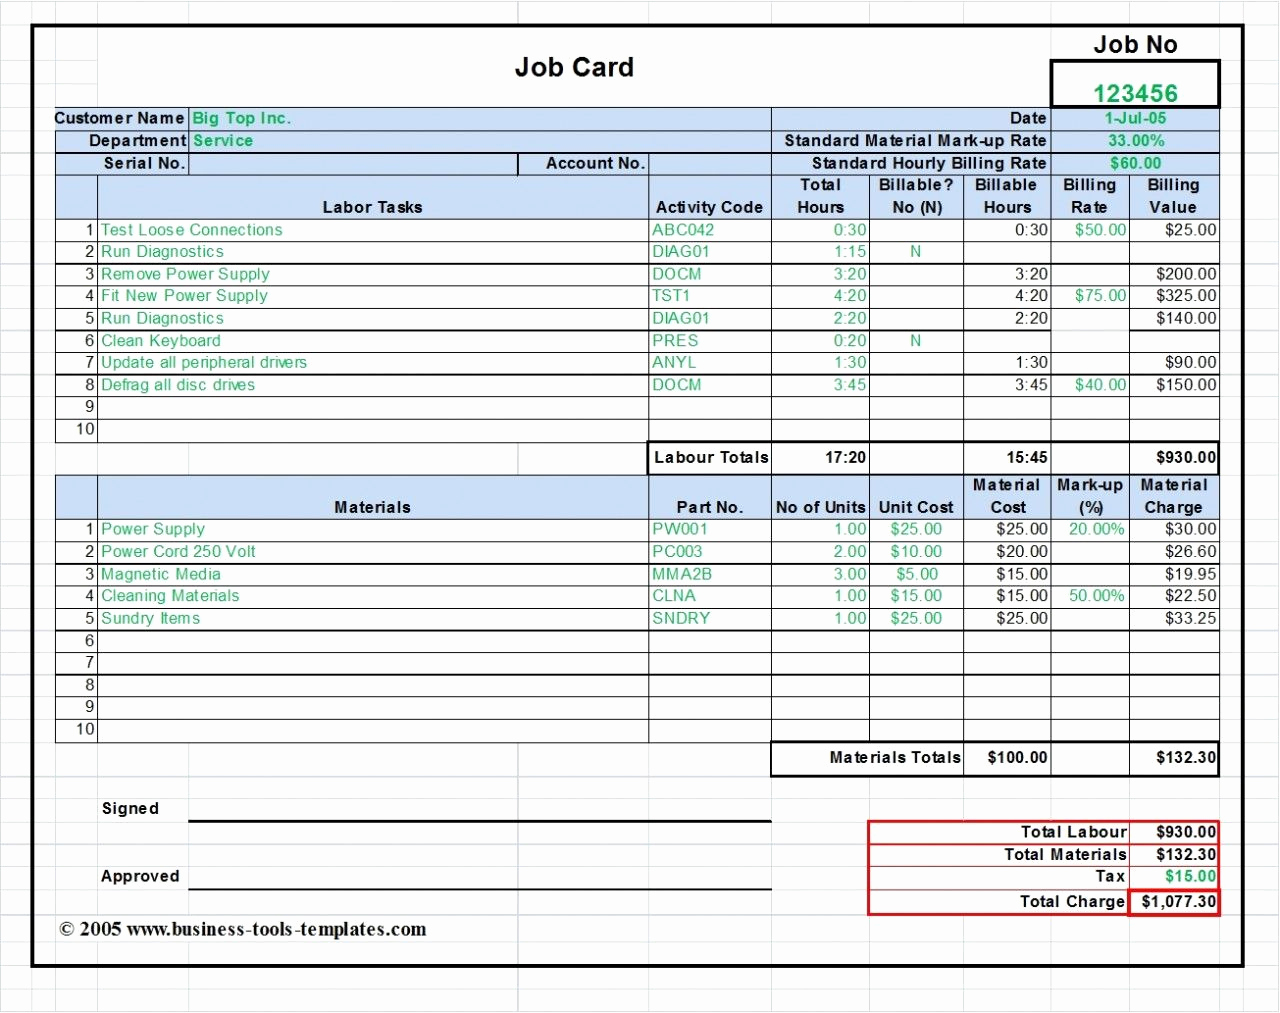 Labor Invoice Template Excel Inspirational the Business tools Store Labor